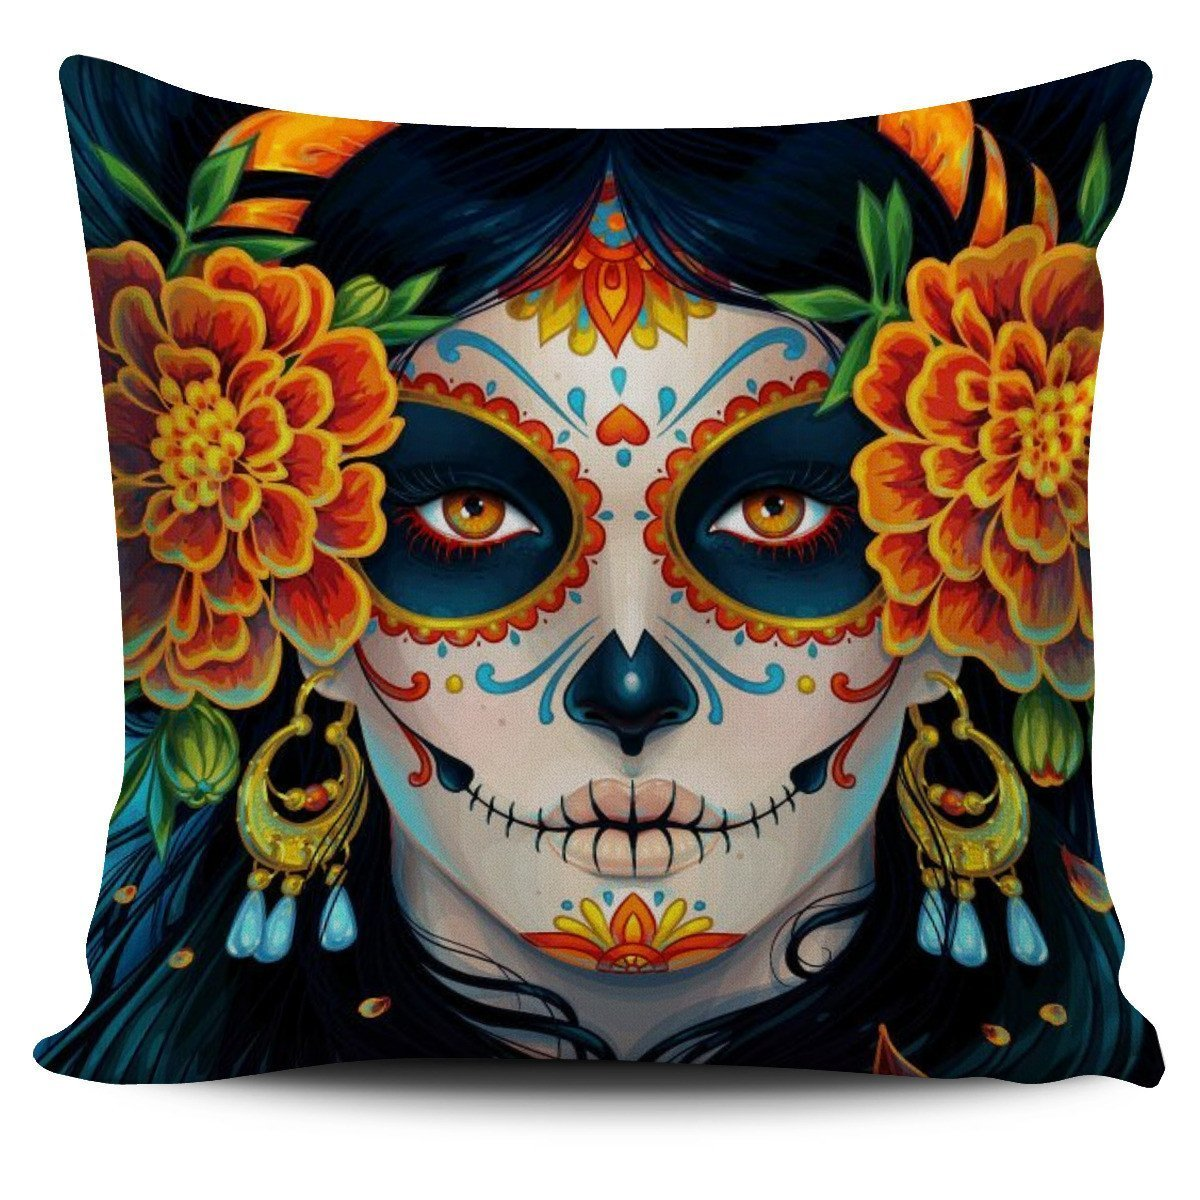 Calavera Girl Pillow Cover